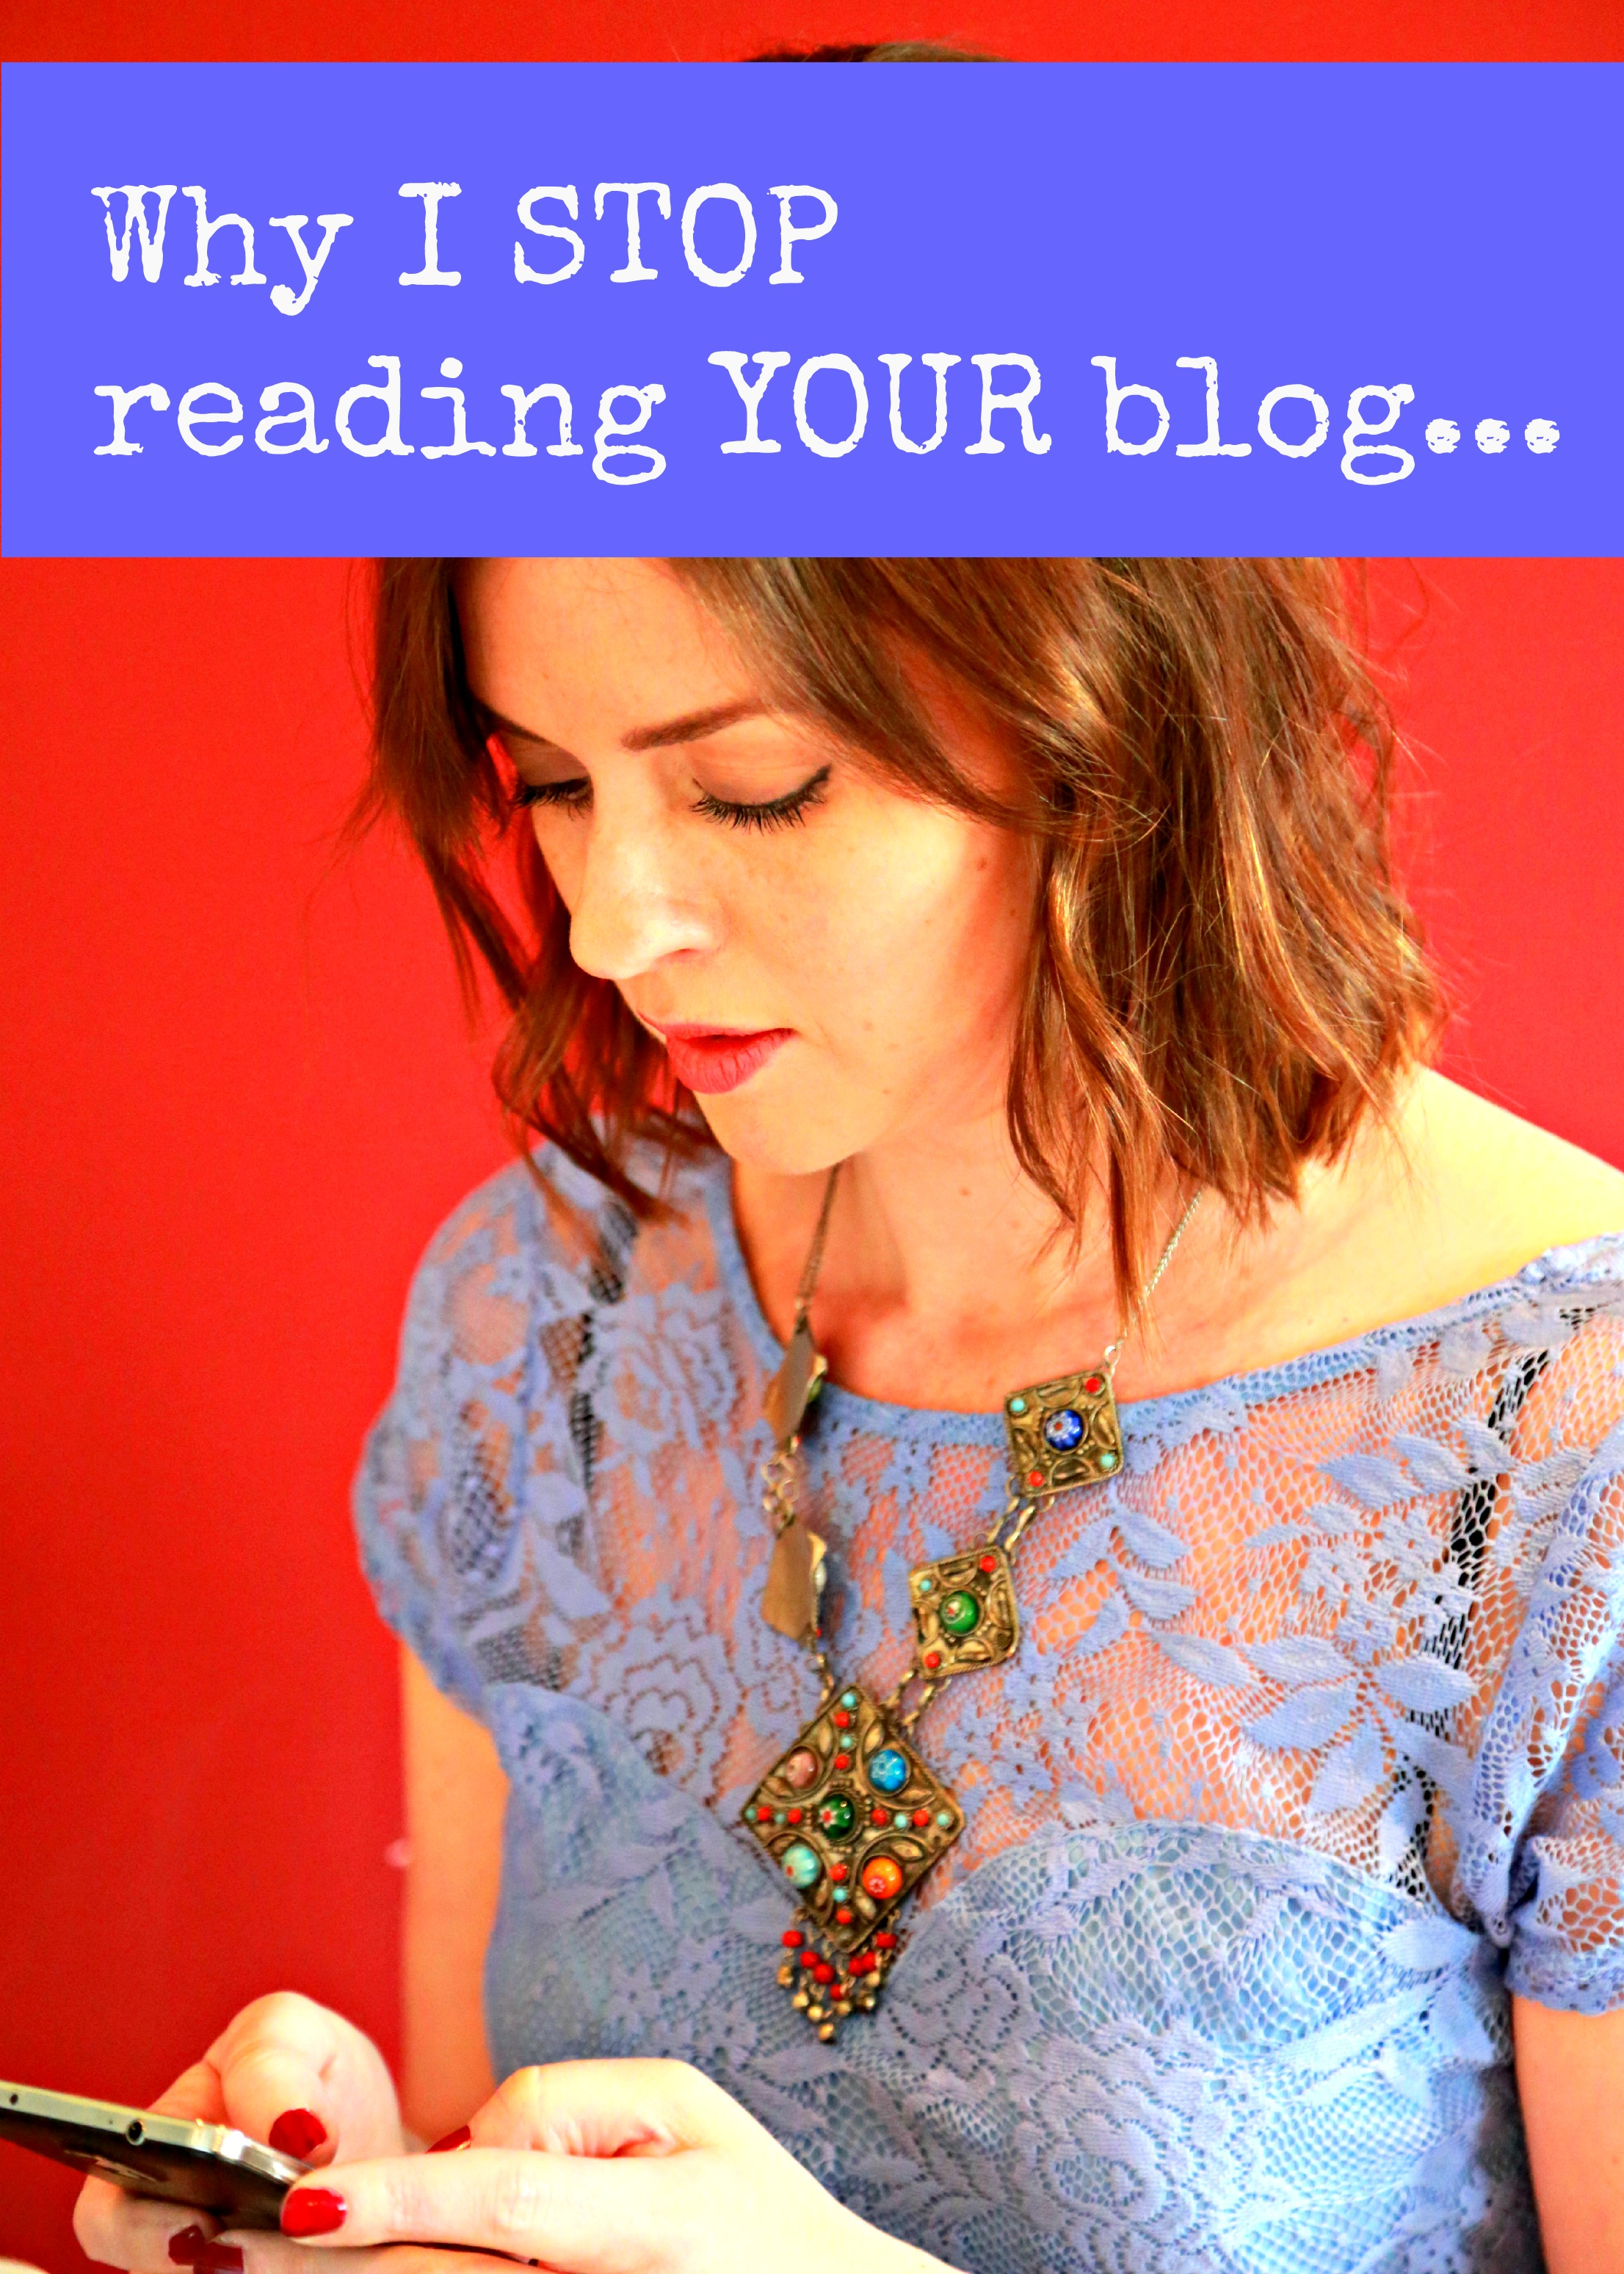 seven things that make me stop reading your blog